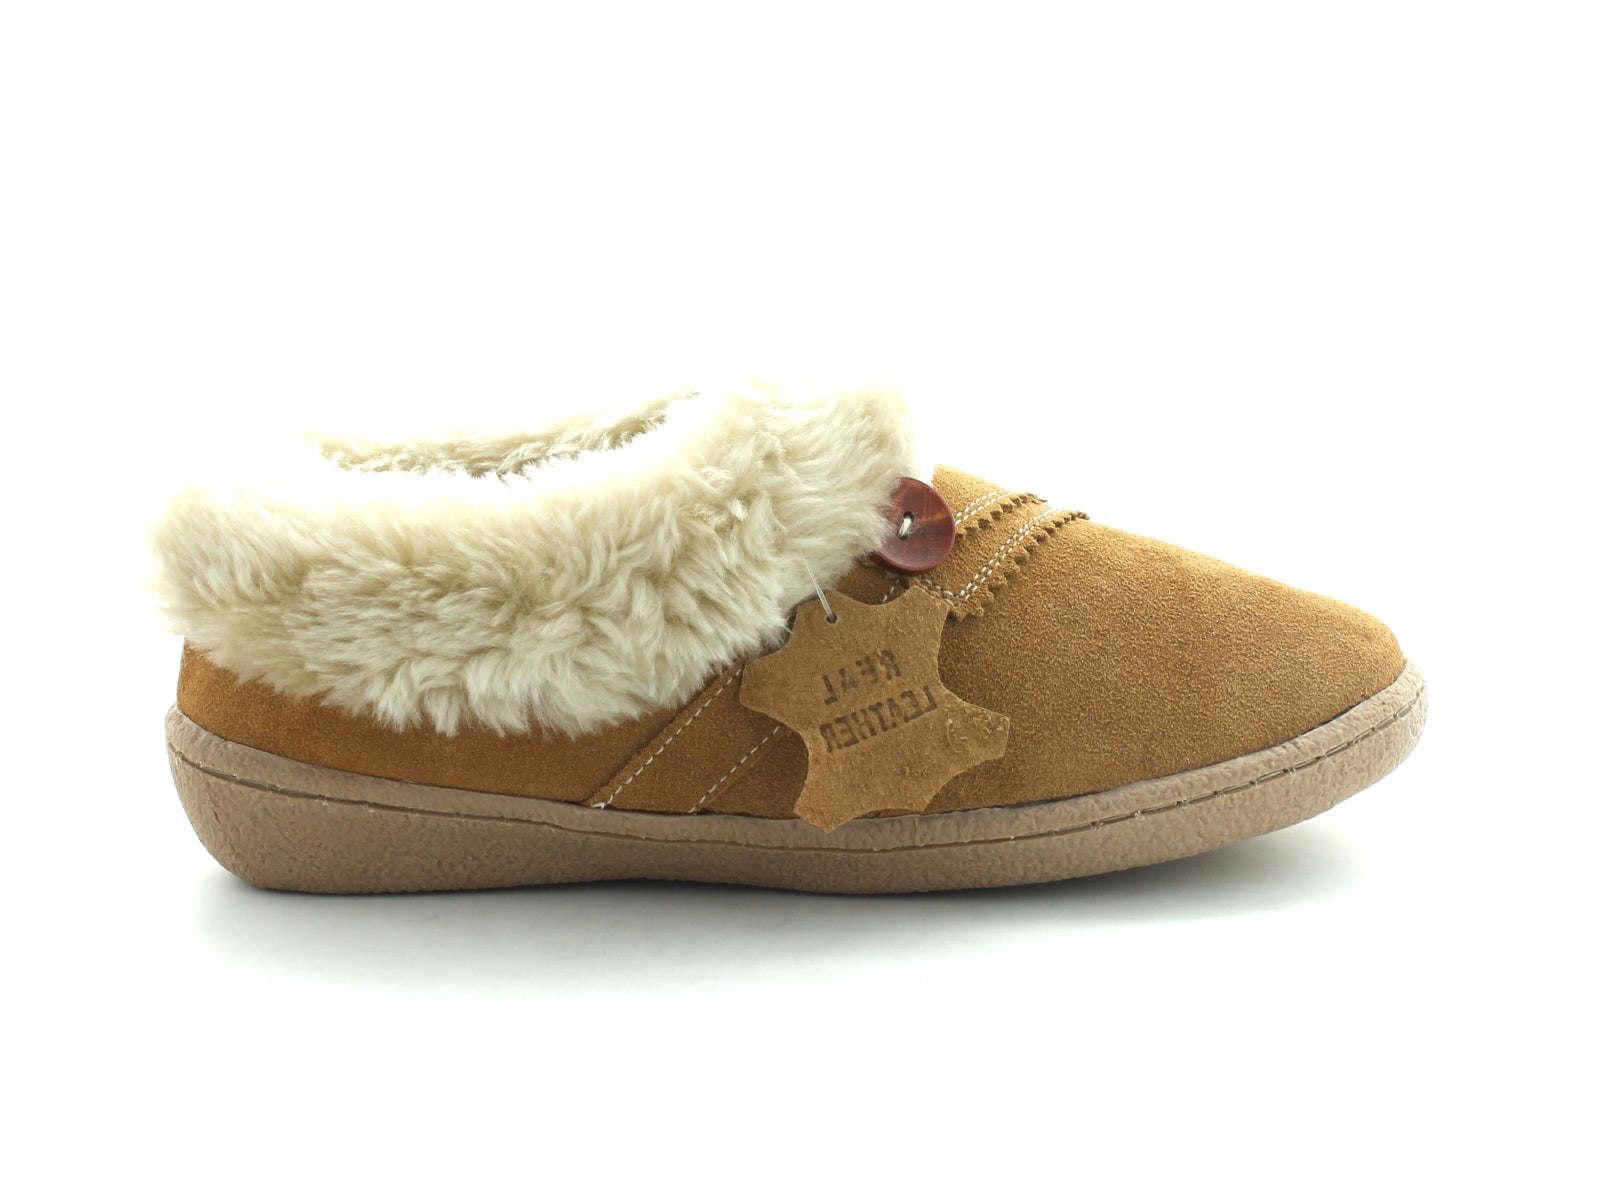 Clarks Eskimo Snow in Tan Suede outer view